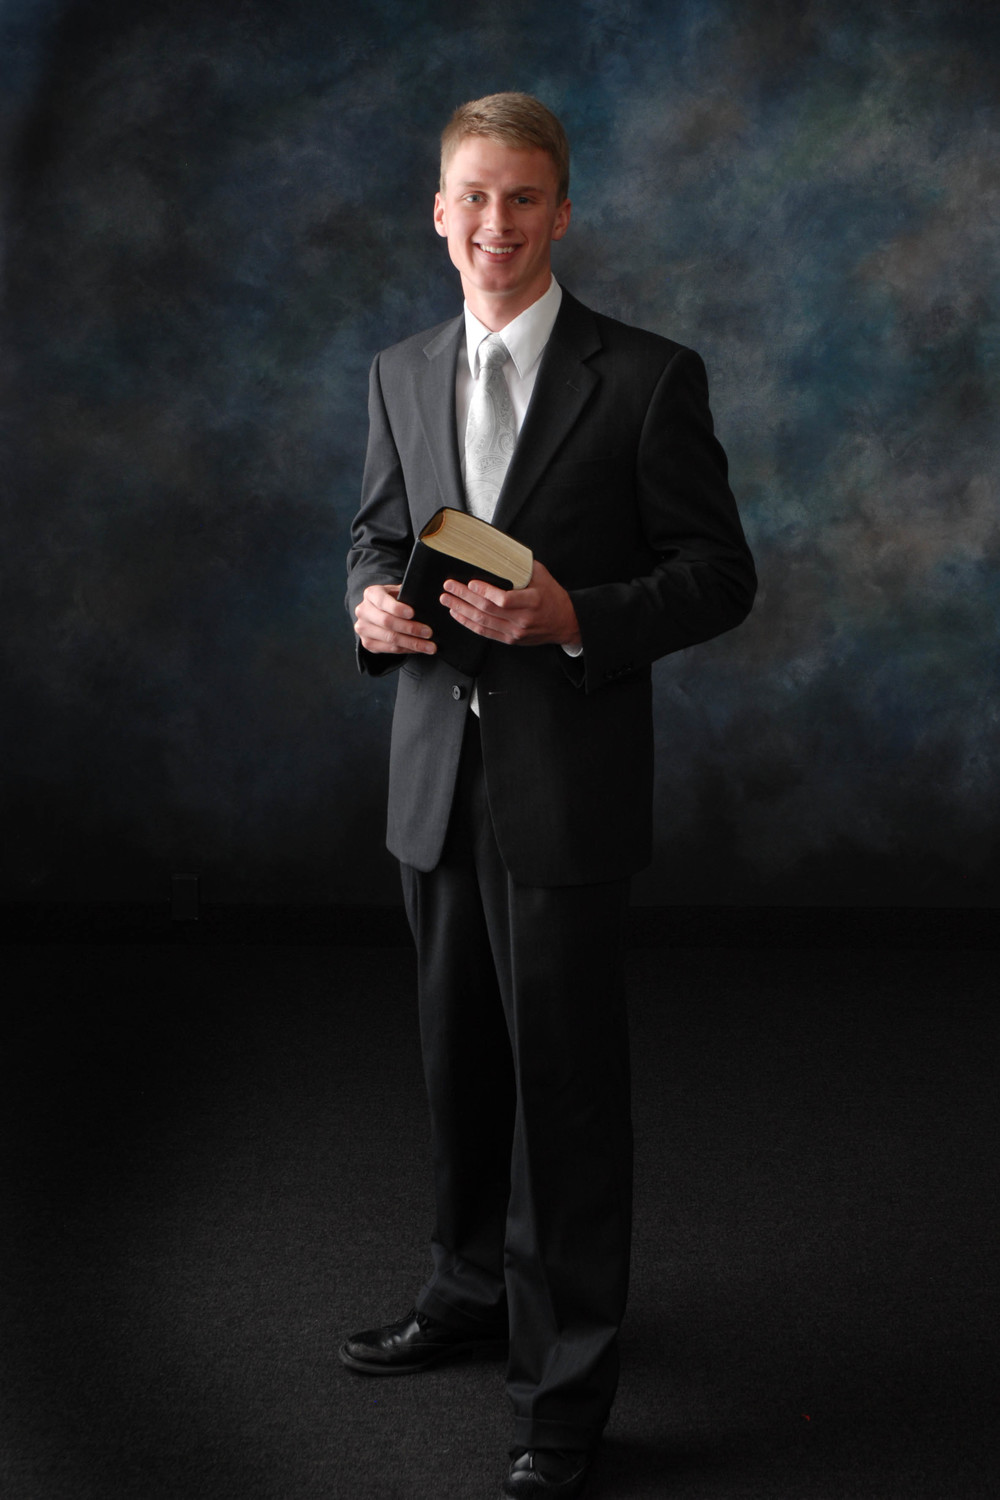 Bountiful Missionary Portrait, by Wasatch Portrait Photography